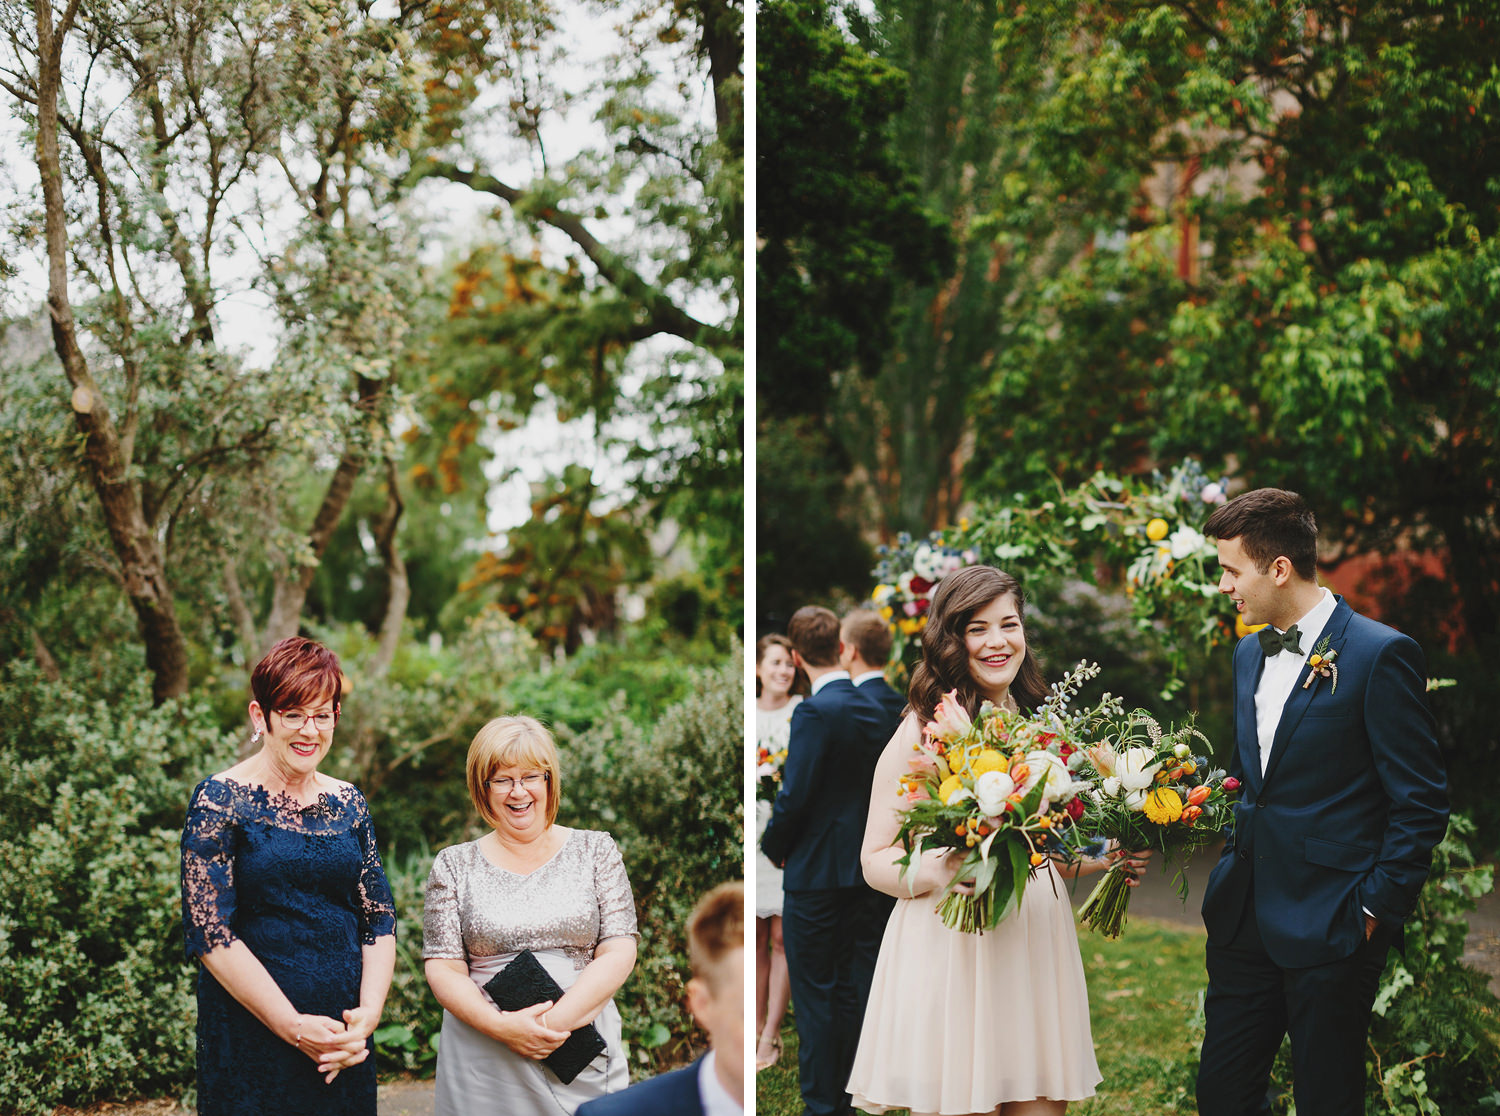 Melbourne_Garden_Wedding_Nick_Kim088.JPG